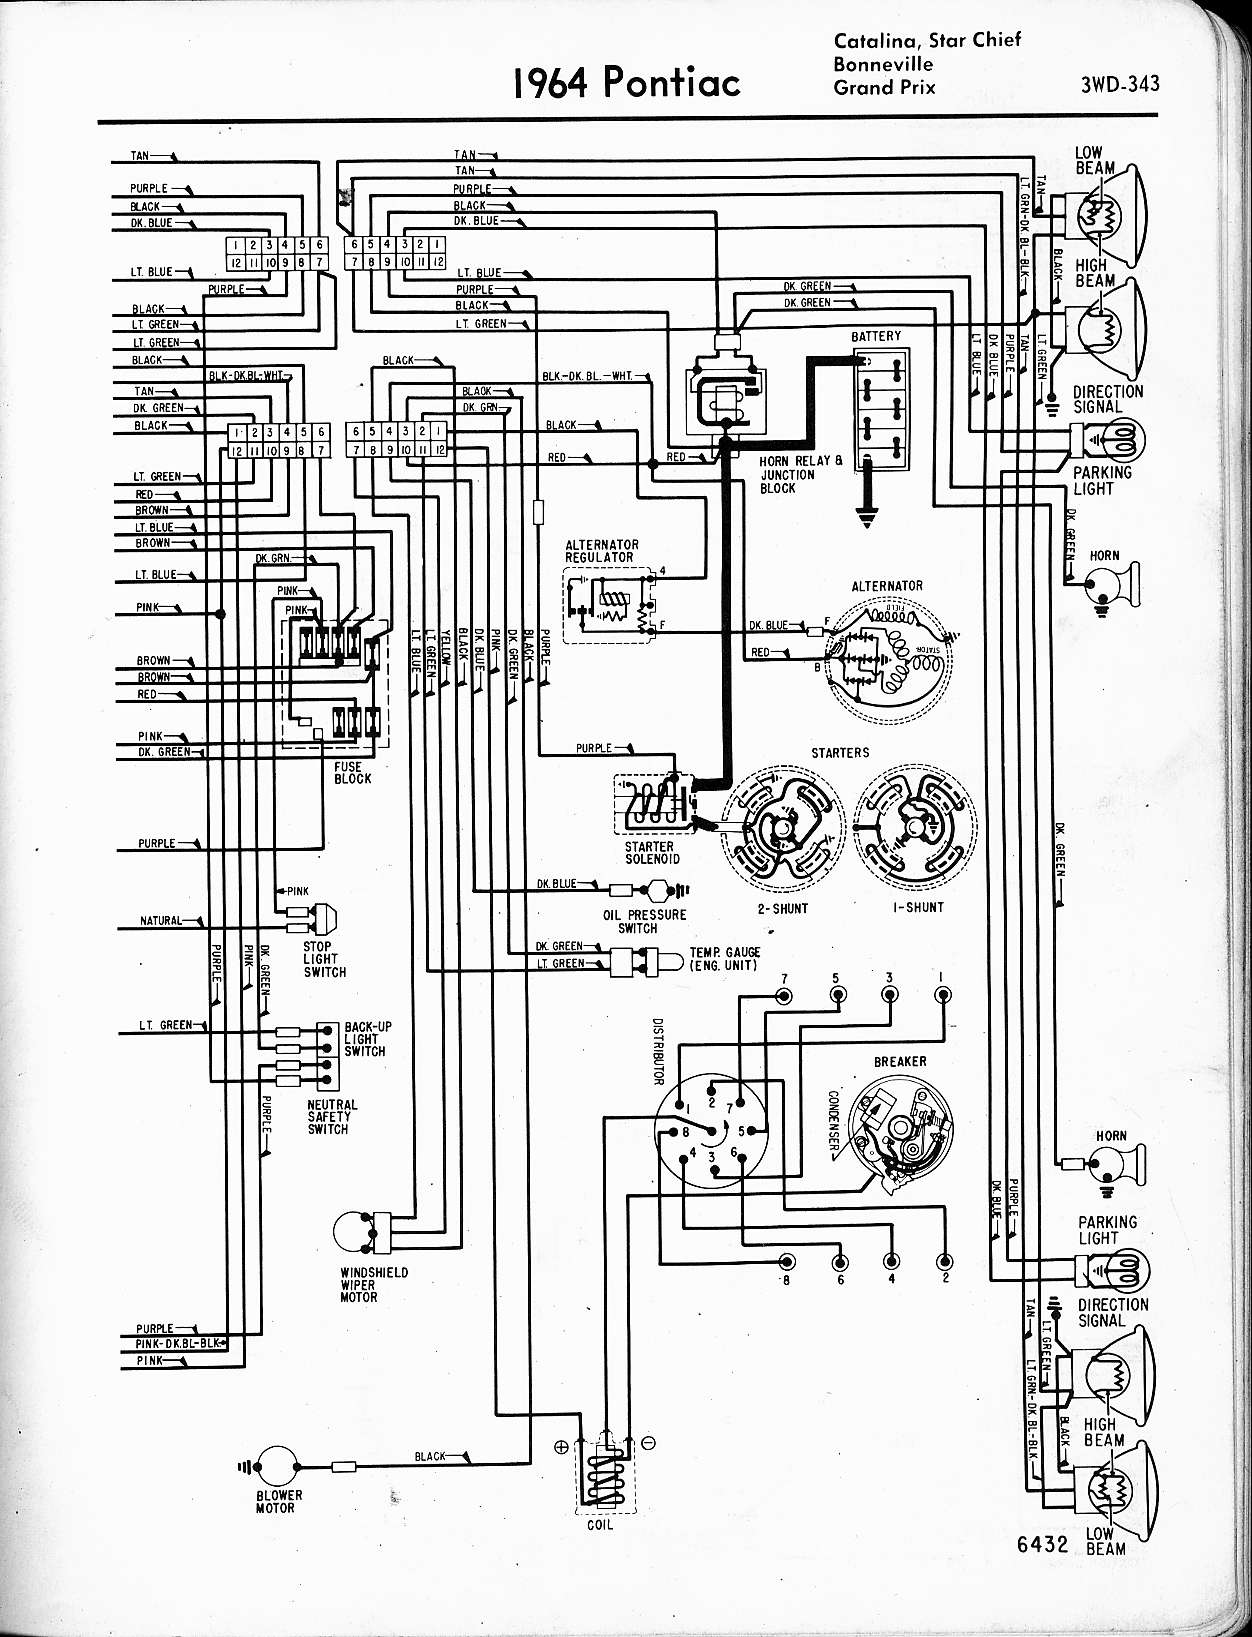 1968 Ford Fuel Gauge Wiring Diagram Archive Of Automotive F250 Diagrams Falcon Detailed Schematics Rh Technograffito Com